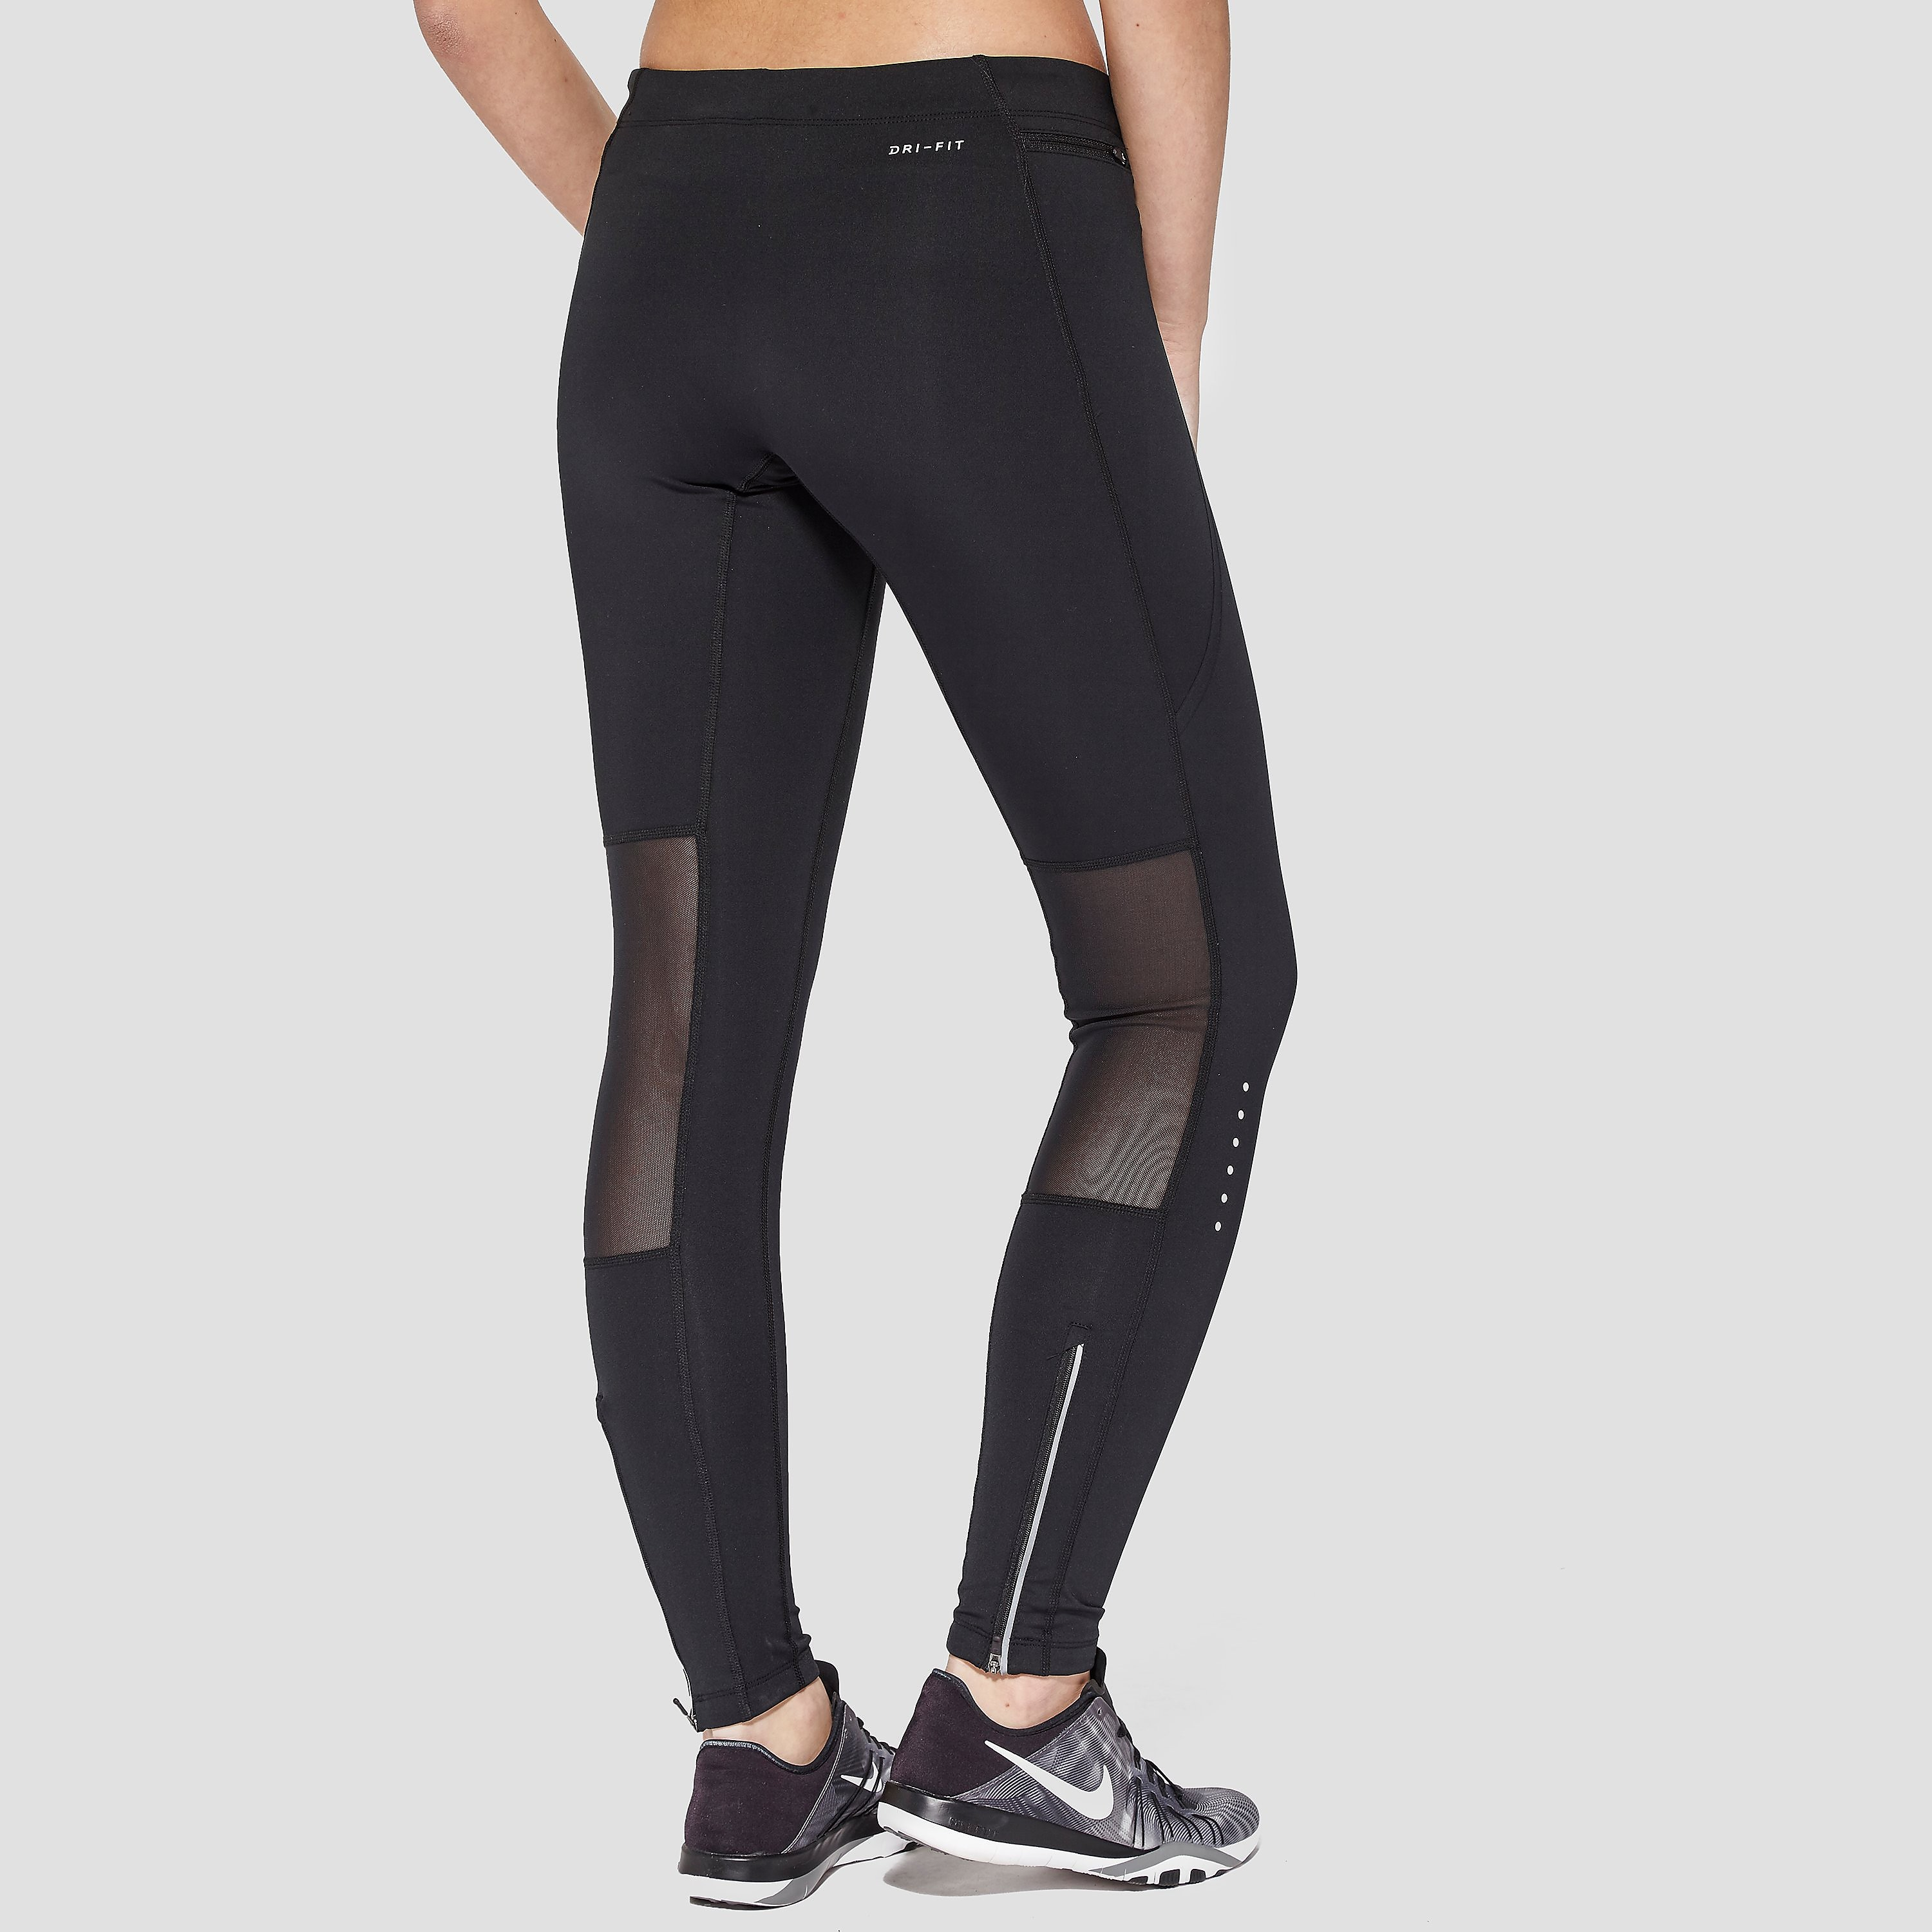 Nike Tech Ladies Tights